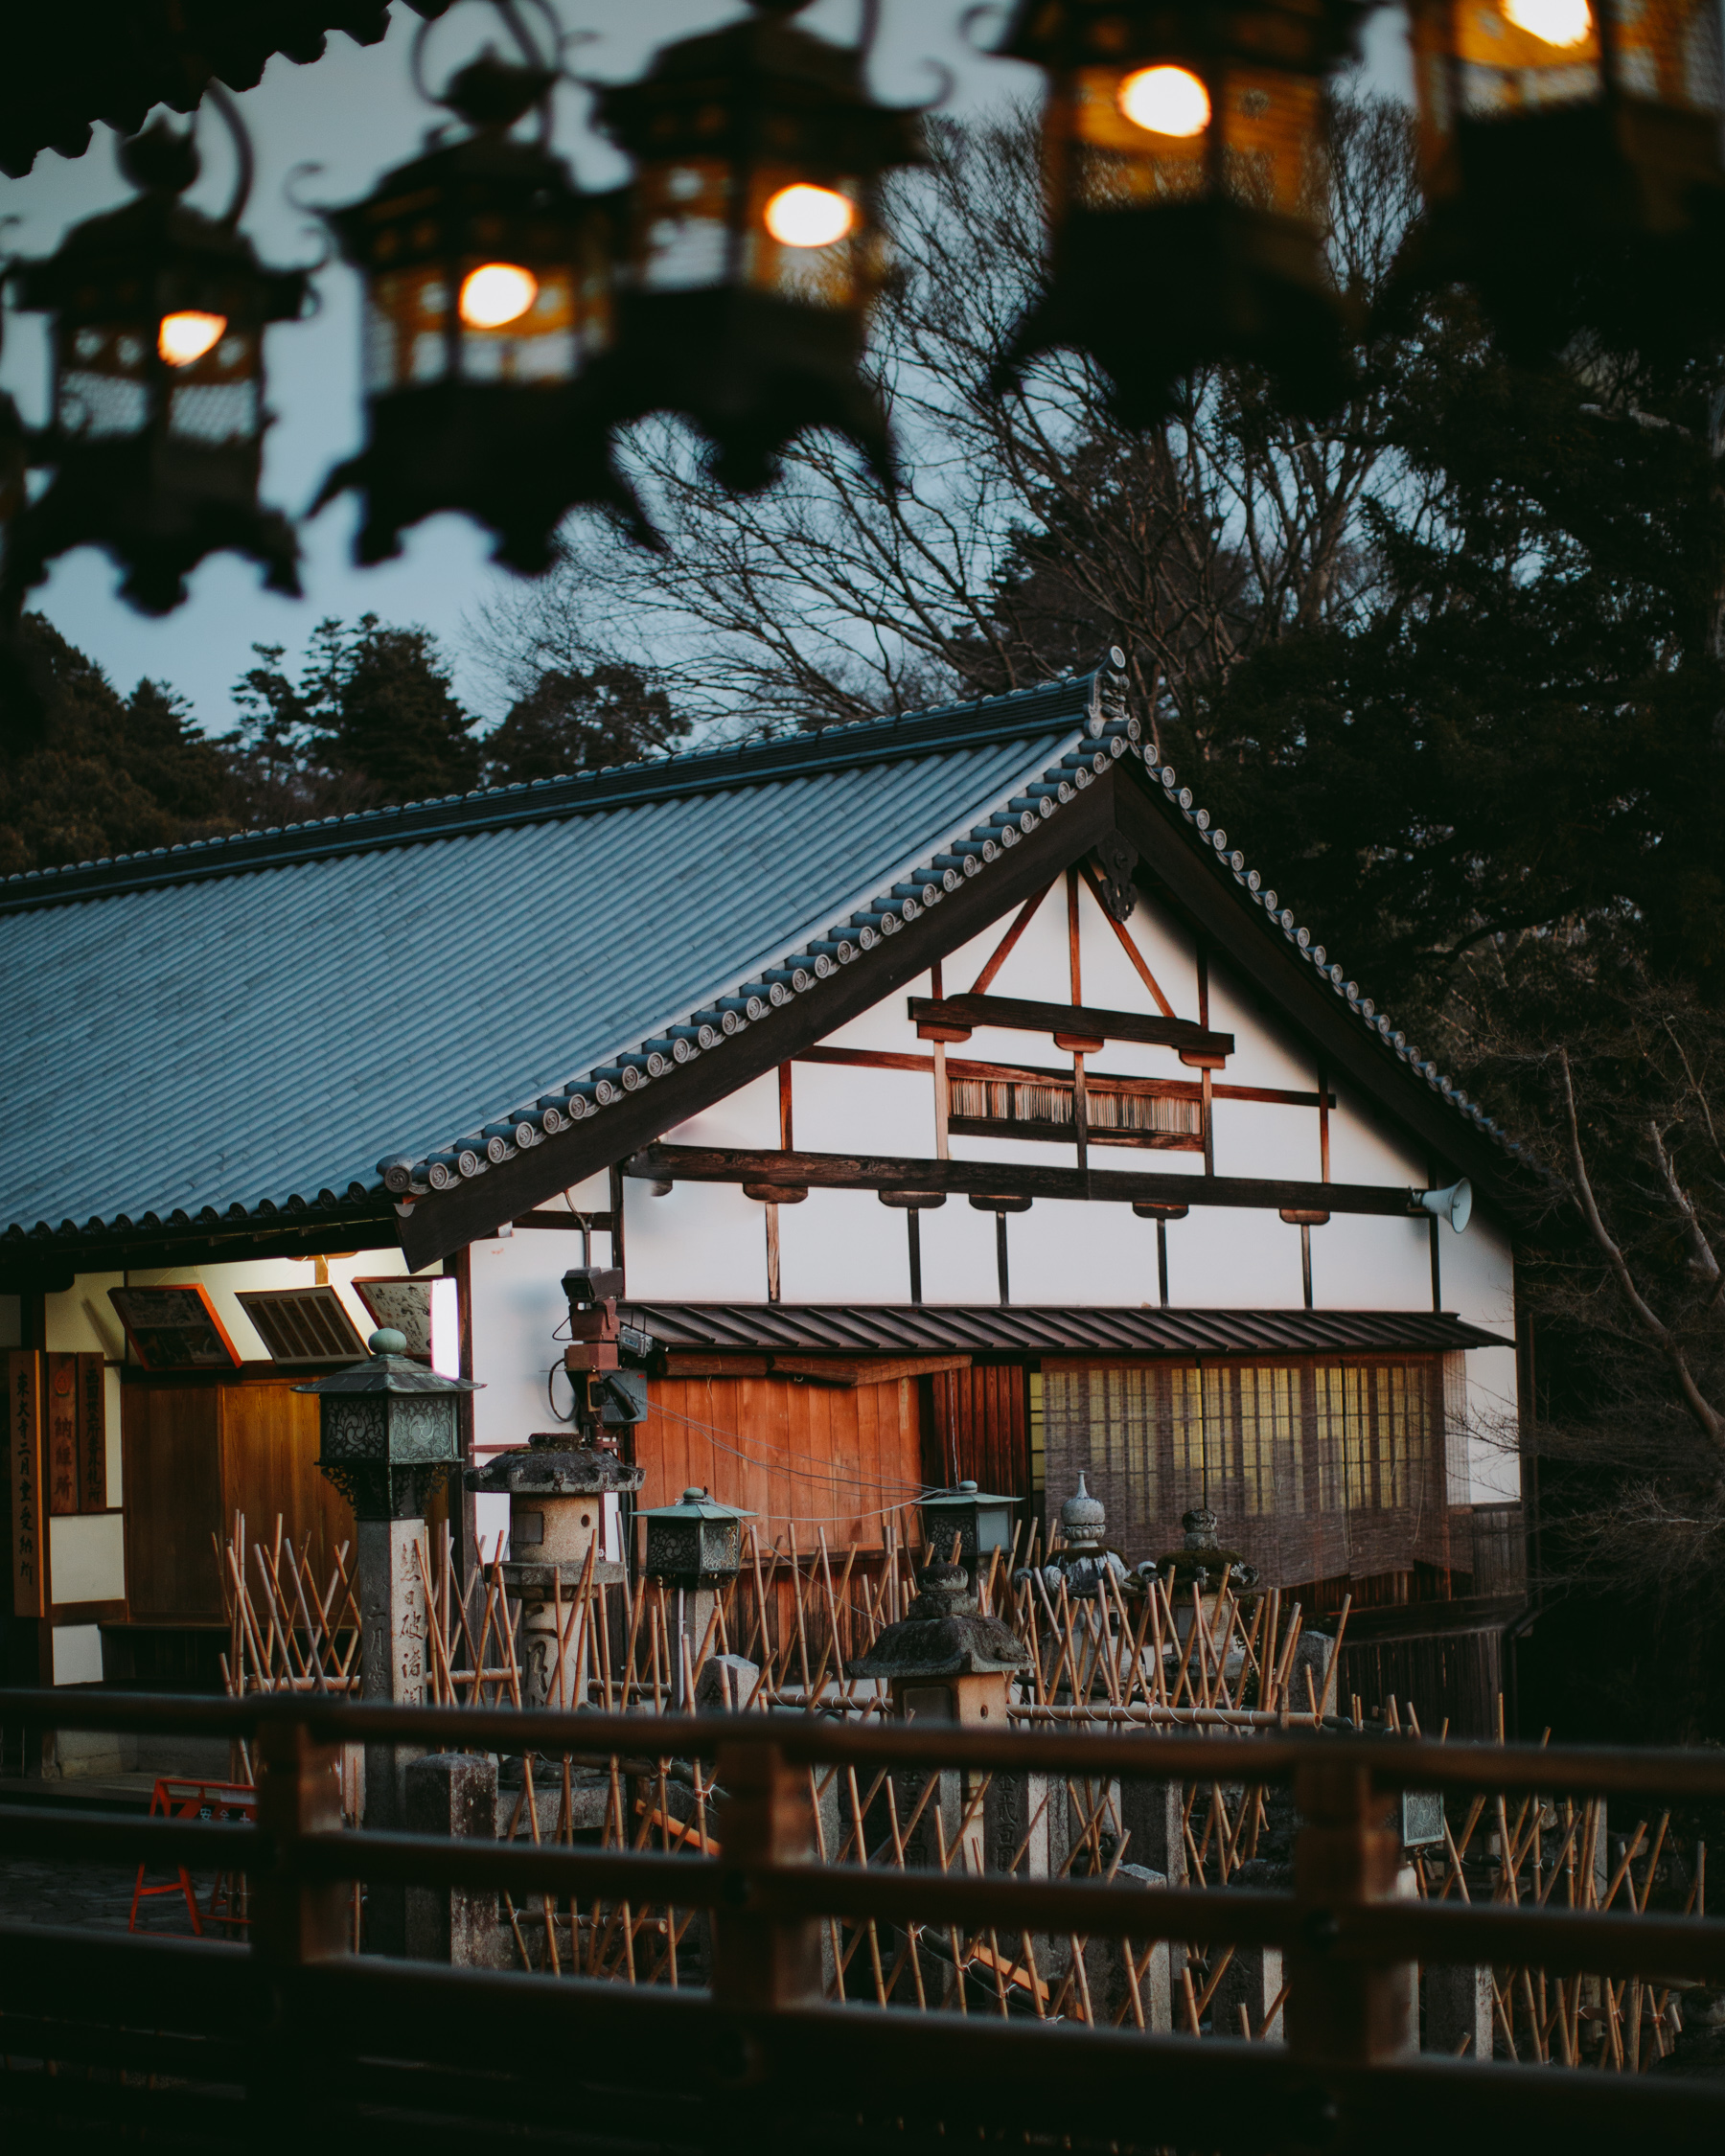 MikeSeehagel-commercial-lifestyle-travel-photography-Japan-84.jpg